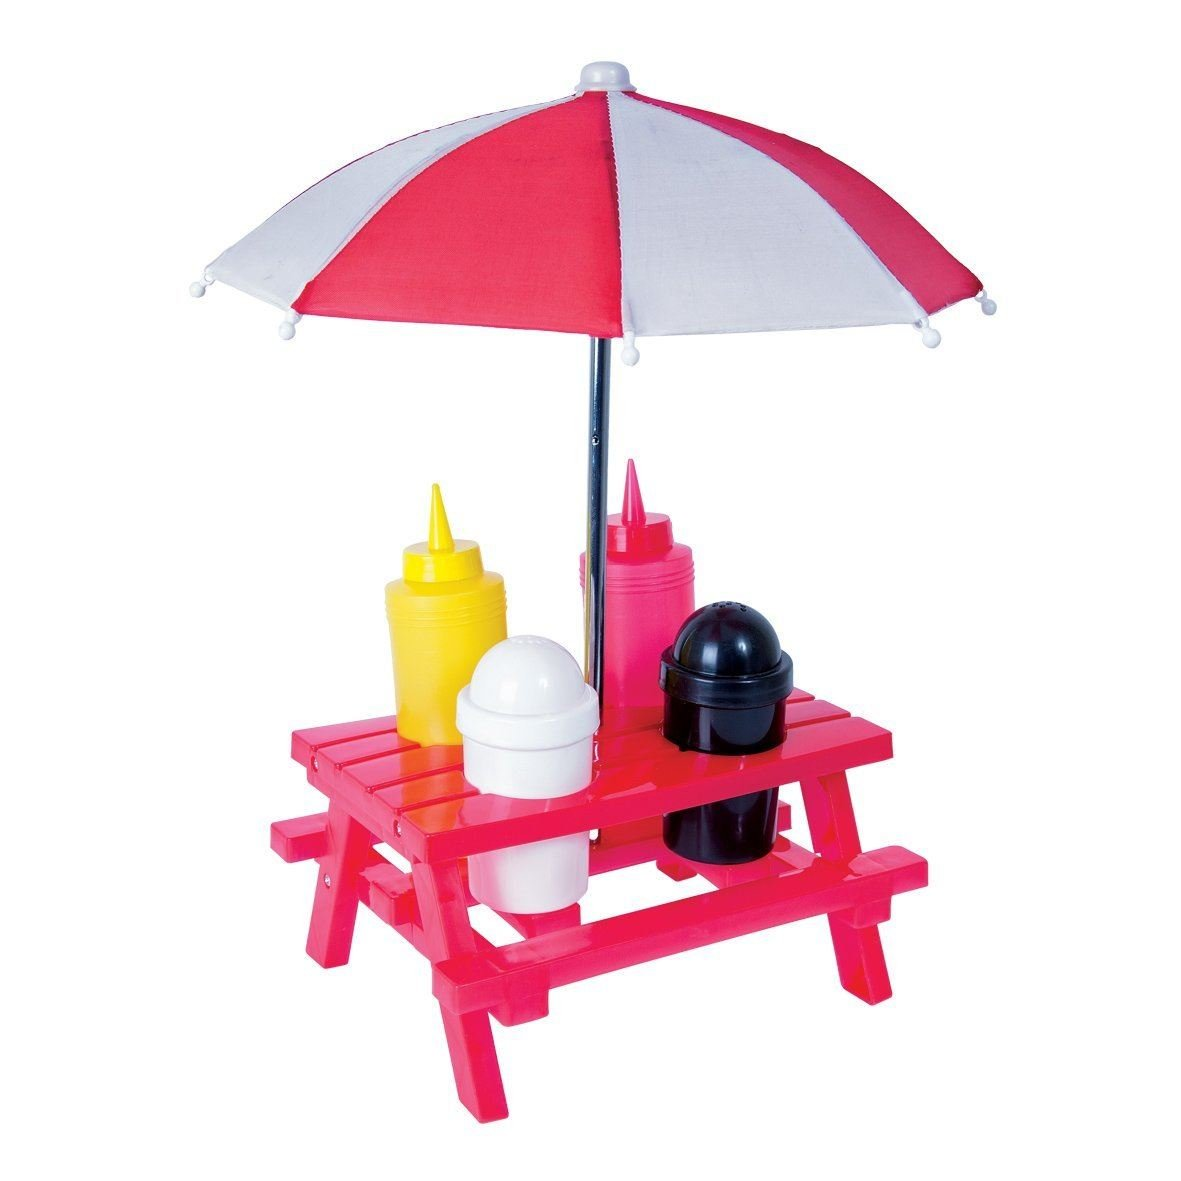 Picnic Bench with Parasol Condiment Sauce Holder